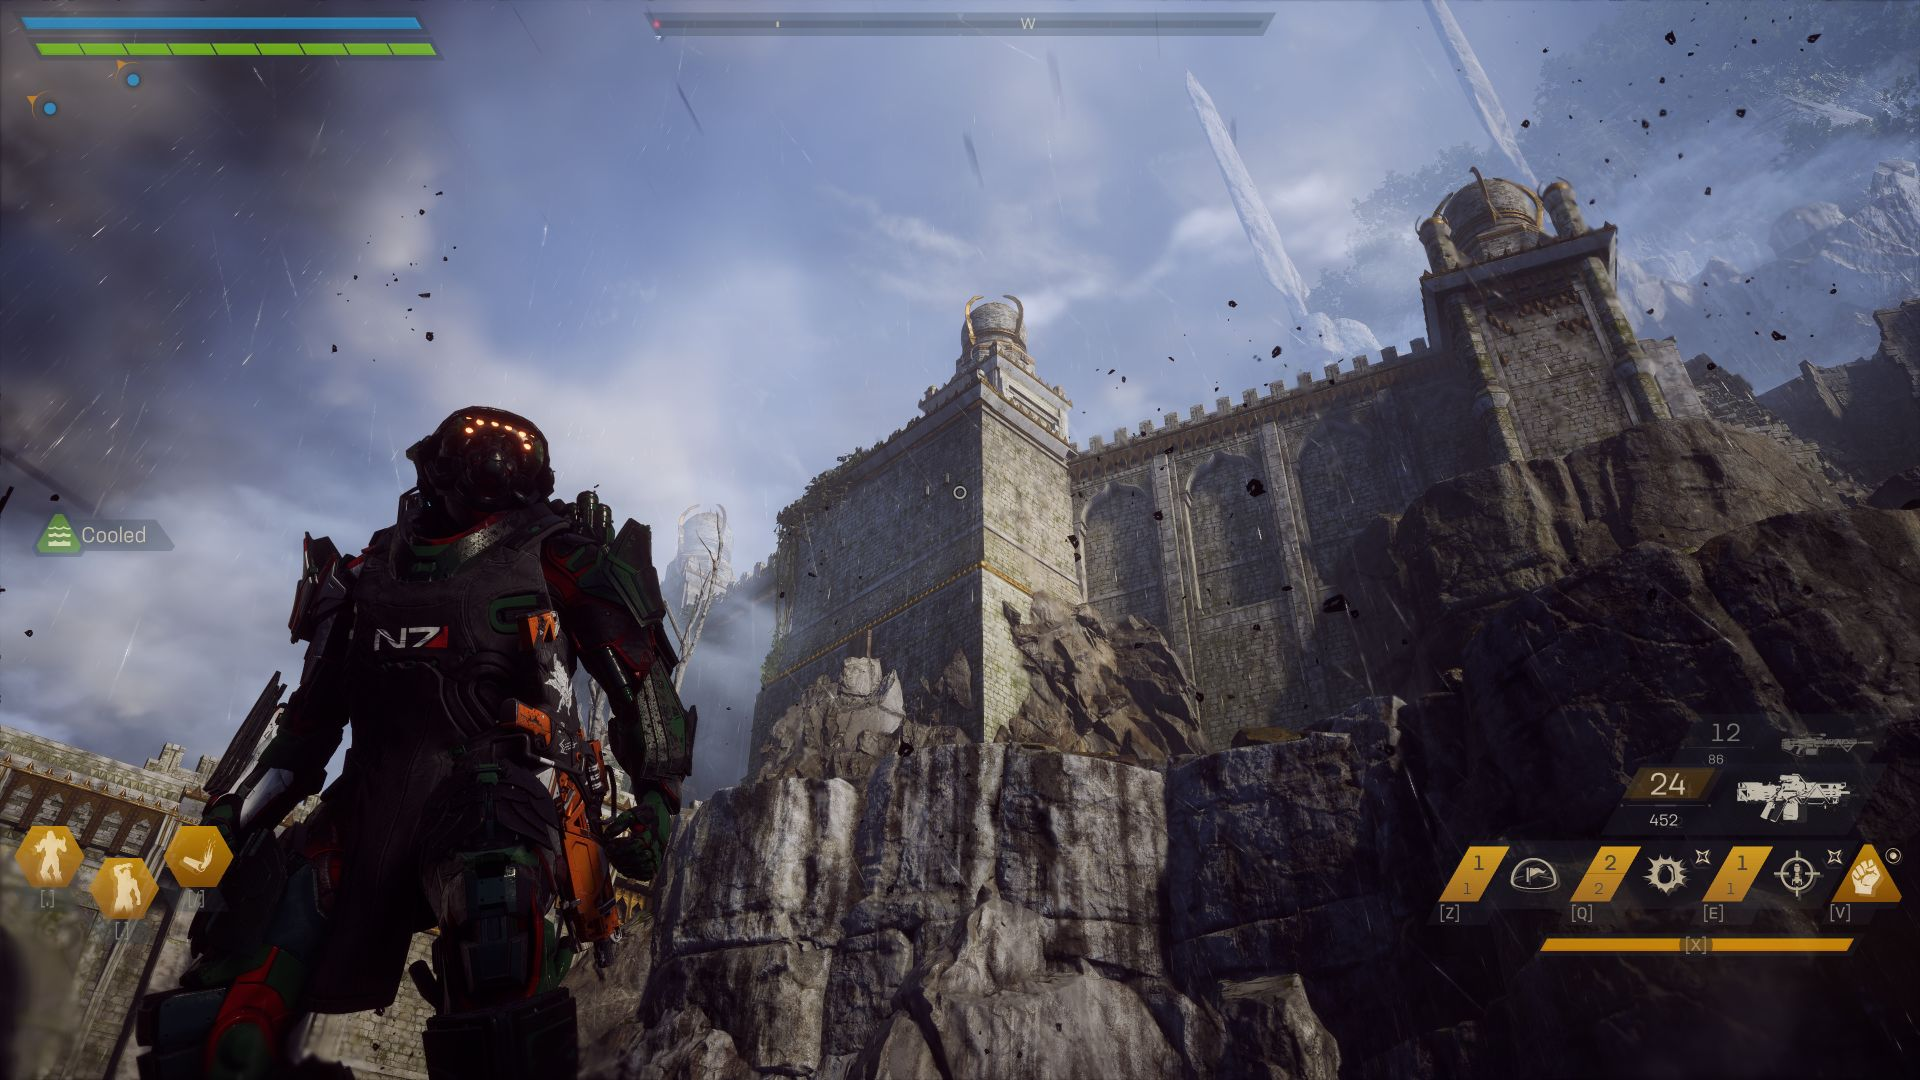 anthem-screenshot-2019-03-26-06-22-13-91